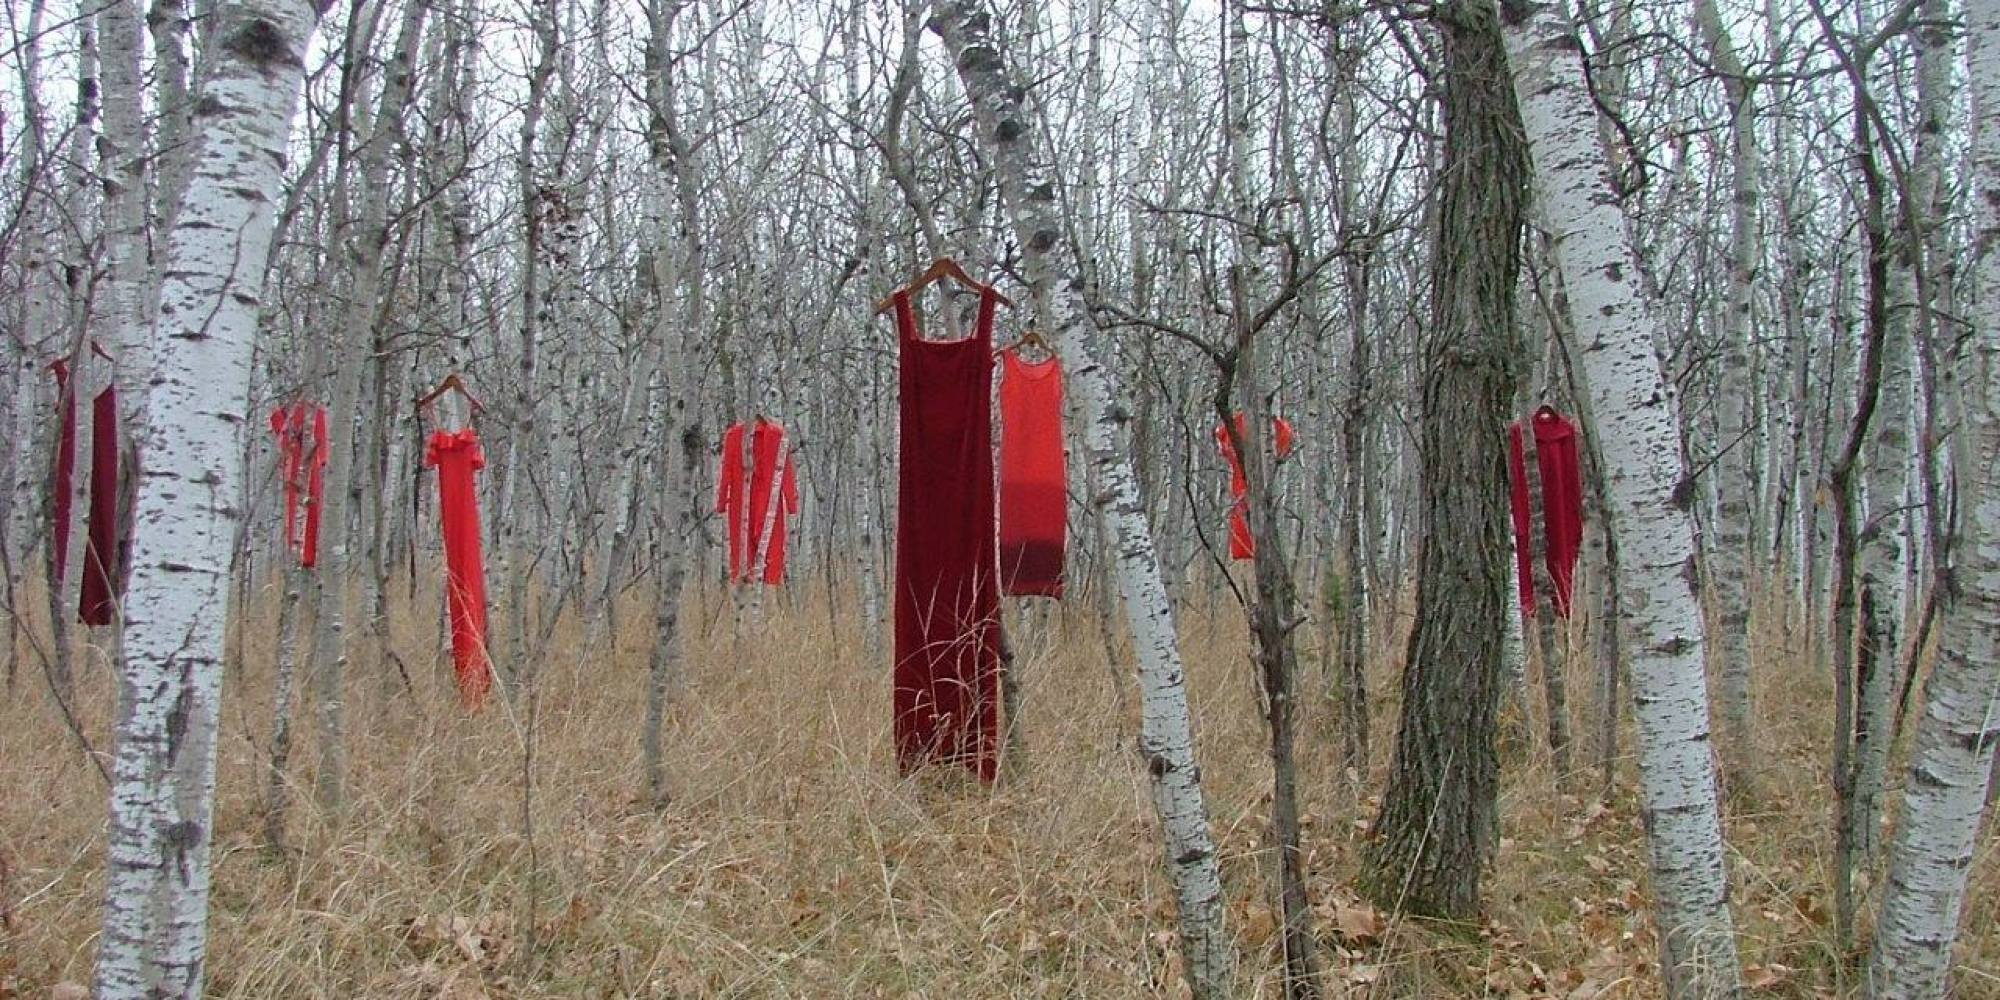 The REDress Project five years ago. It collects red dresses from the community and hangs them in public spaces as a visual reminder of the women who are no longer present